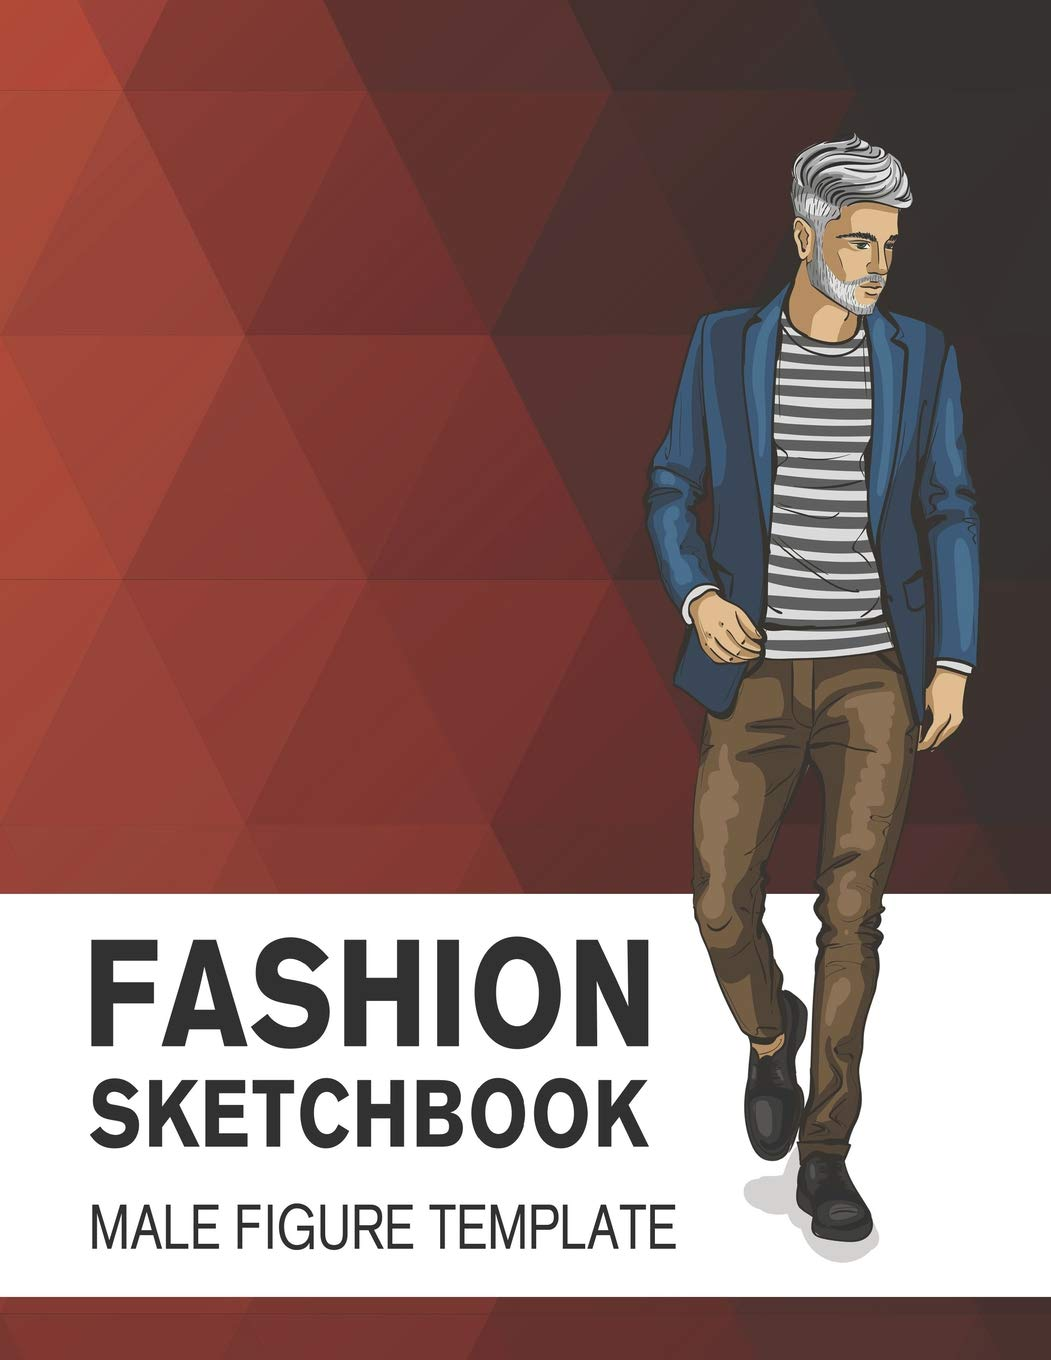 Fashion Sketchbook Male Figure Template Easily Sketch Your Fashion Design With Large Male Figure Template Derrick Lance 9781729486337 Amazon Com Books